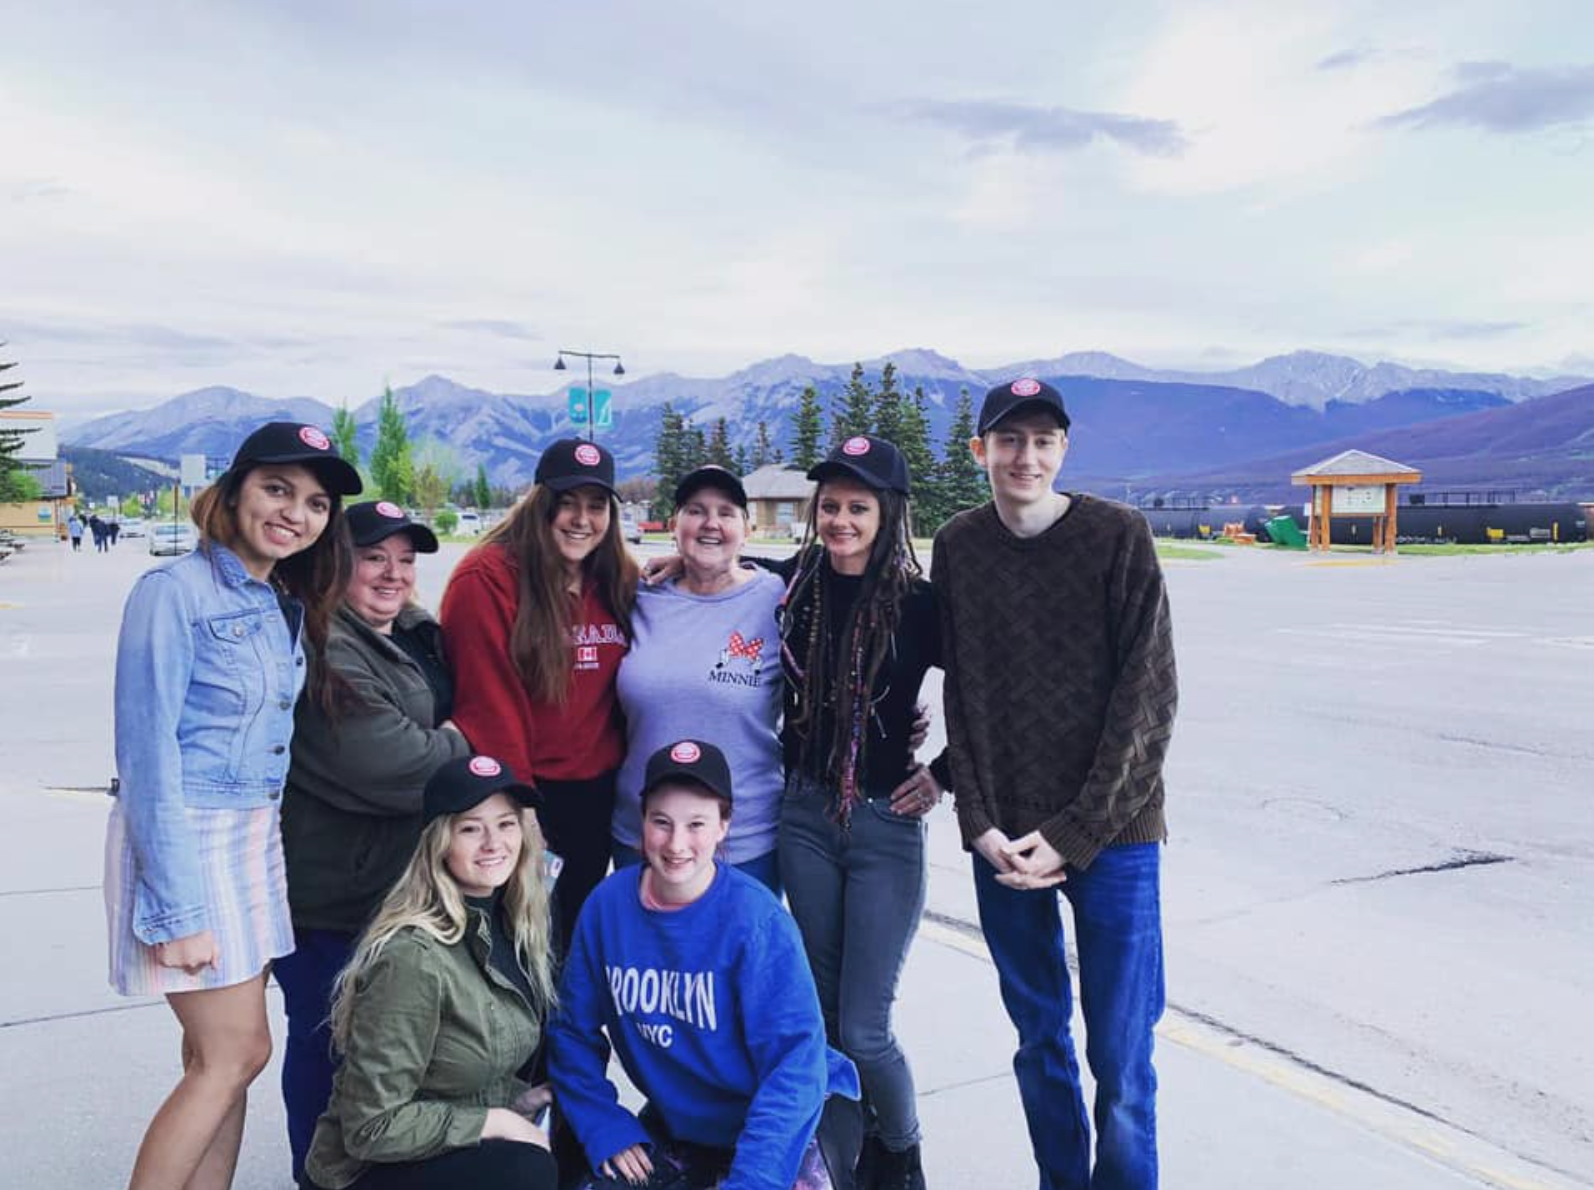 These Mobilizers are making new friends and memories of a lifetime on their Rocky Mountain jobs in Alberta